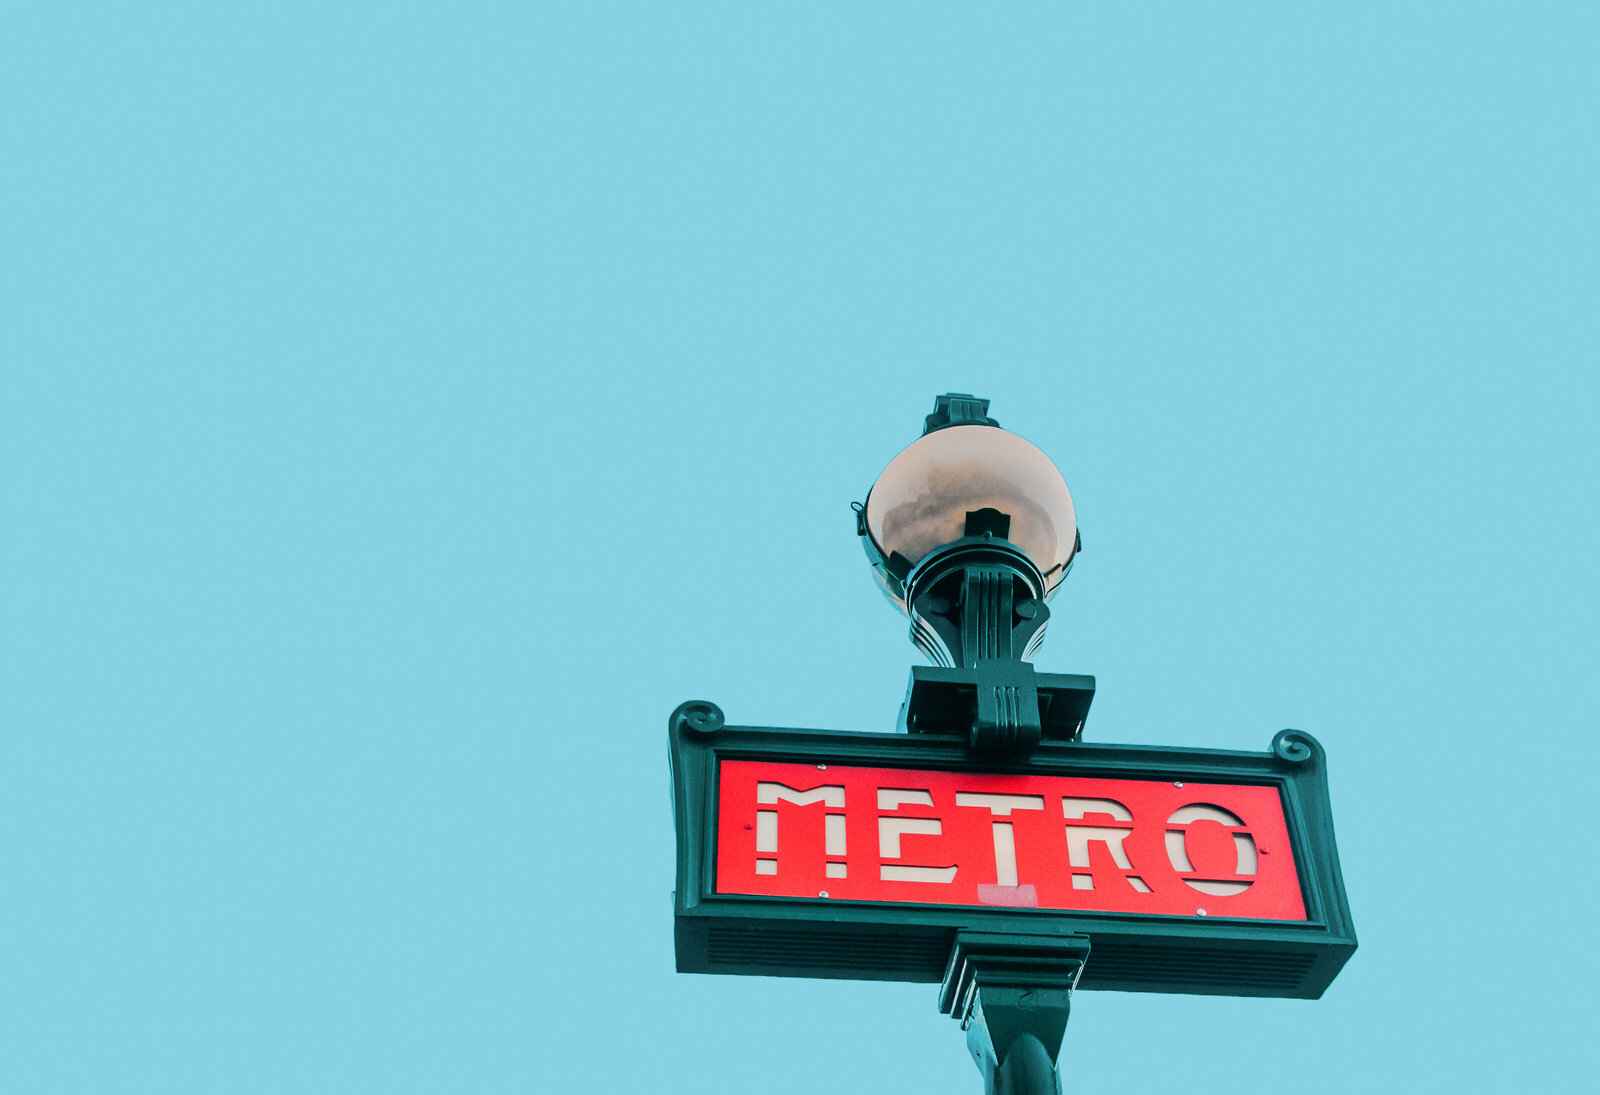 023-KBP-Paris-France-Metro